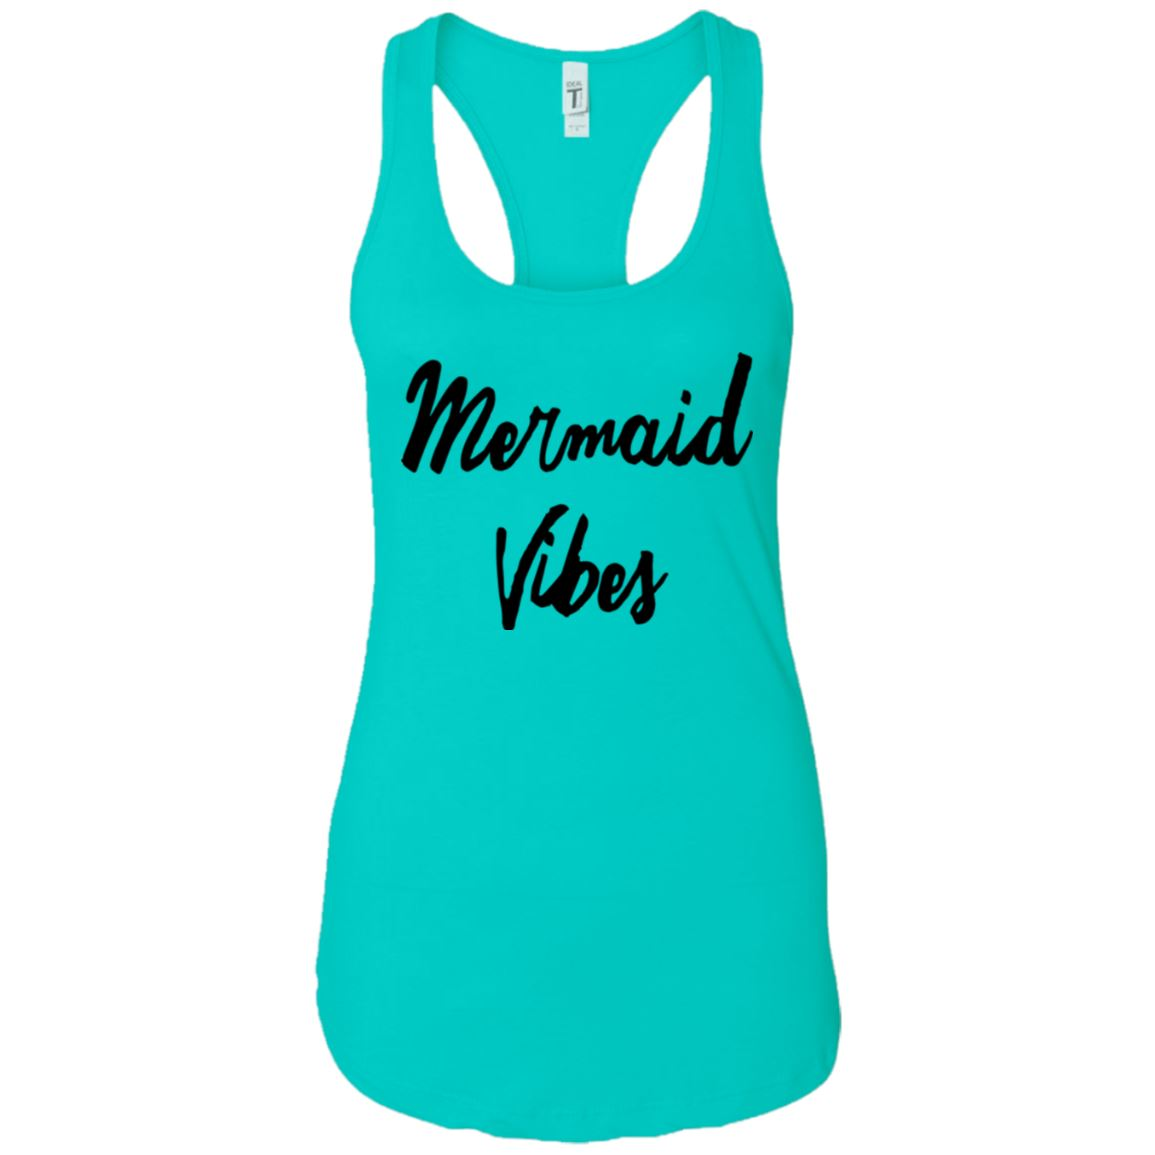 Mermaid Vibes Level Ladies Racerback Tank Mermaid Apparel Tahiti Blue X-Small